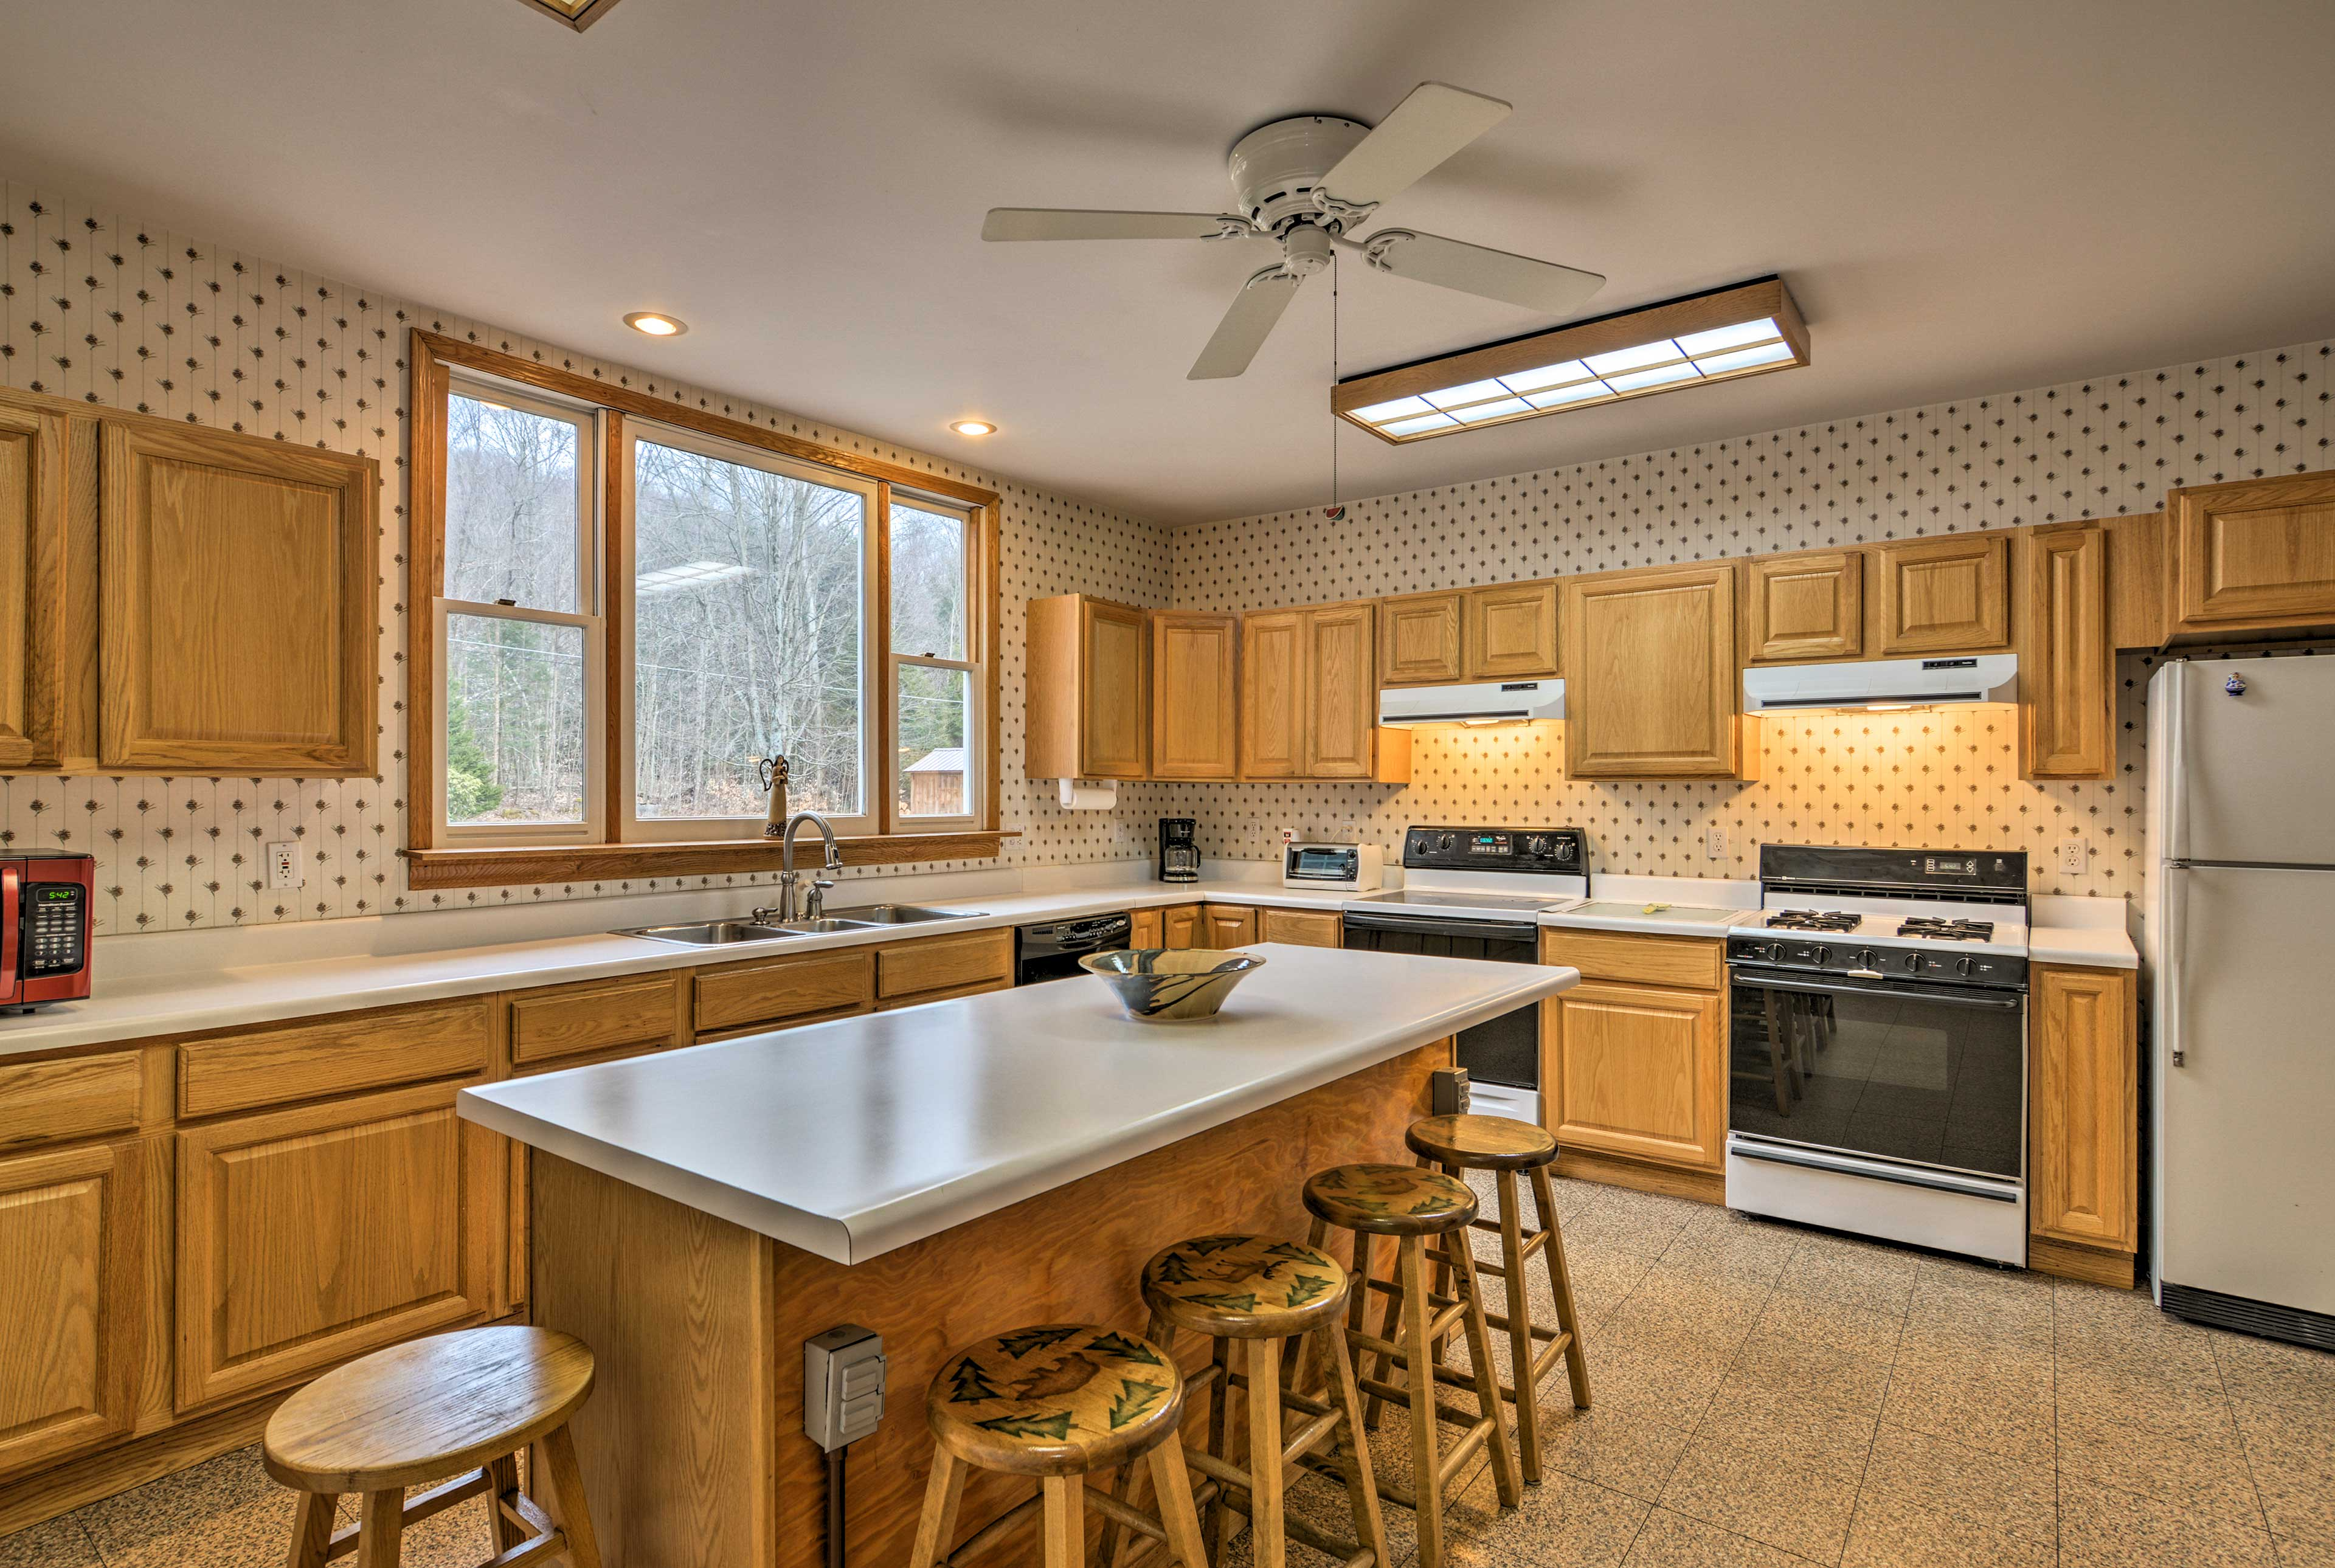 Step into the fully equipped kitchen to make your favorite meals.